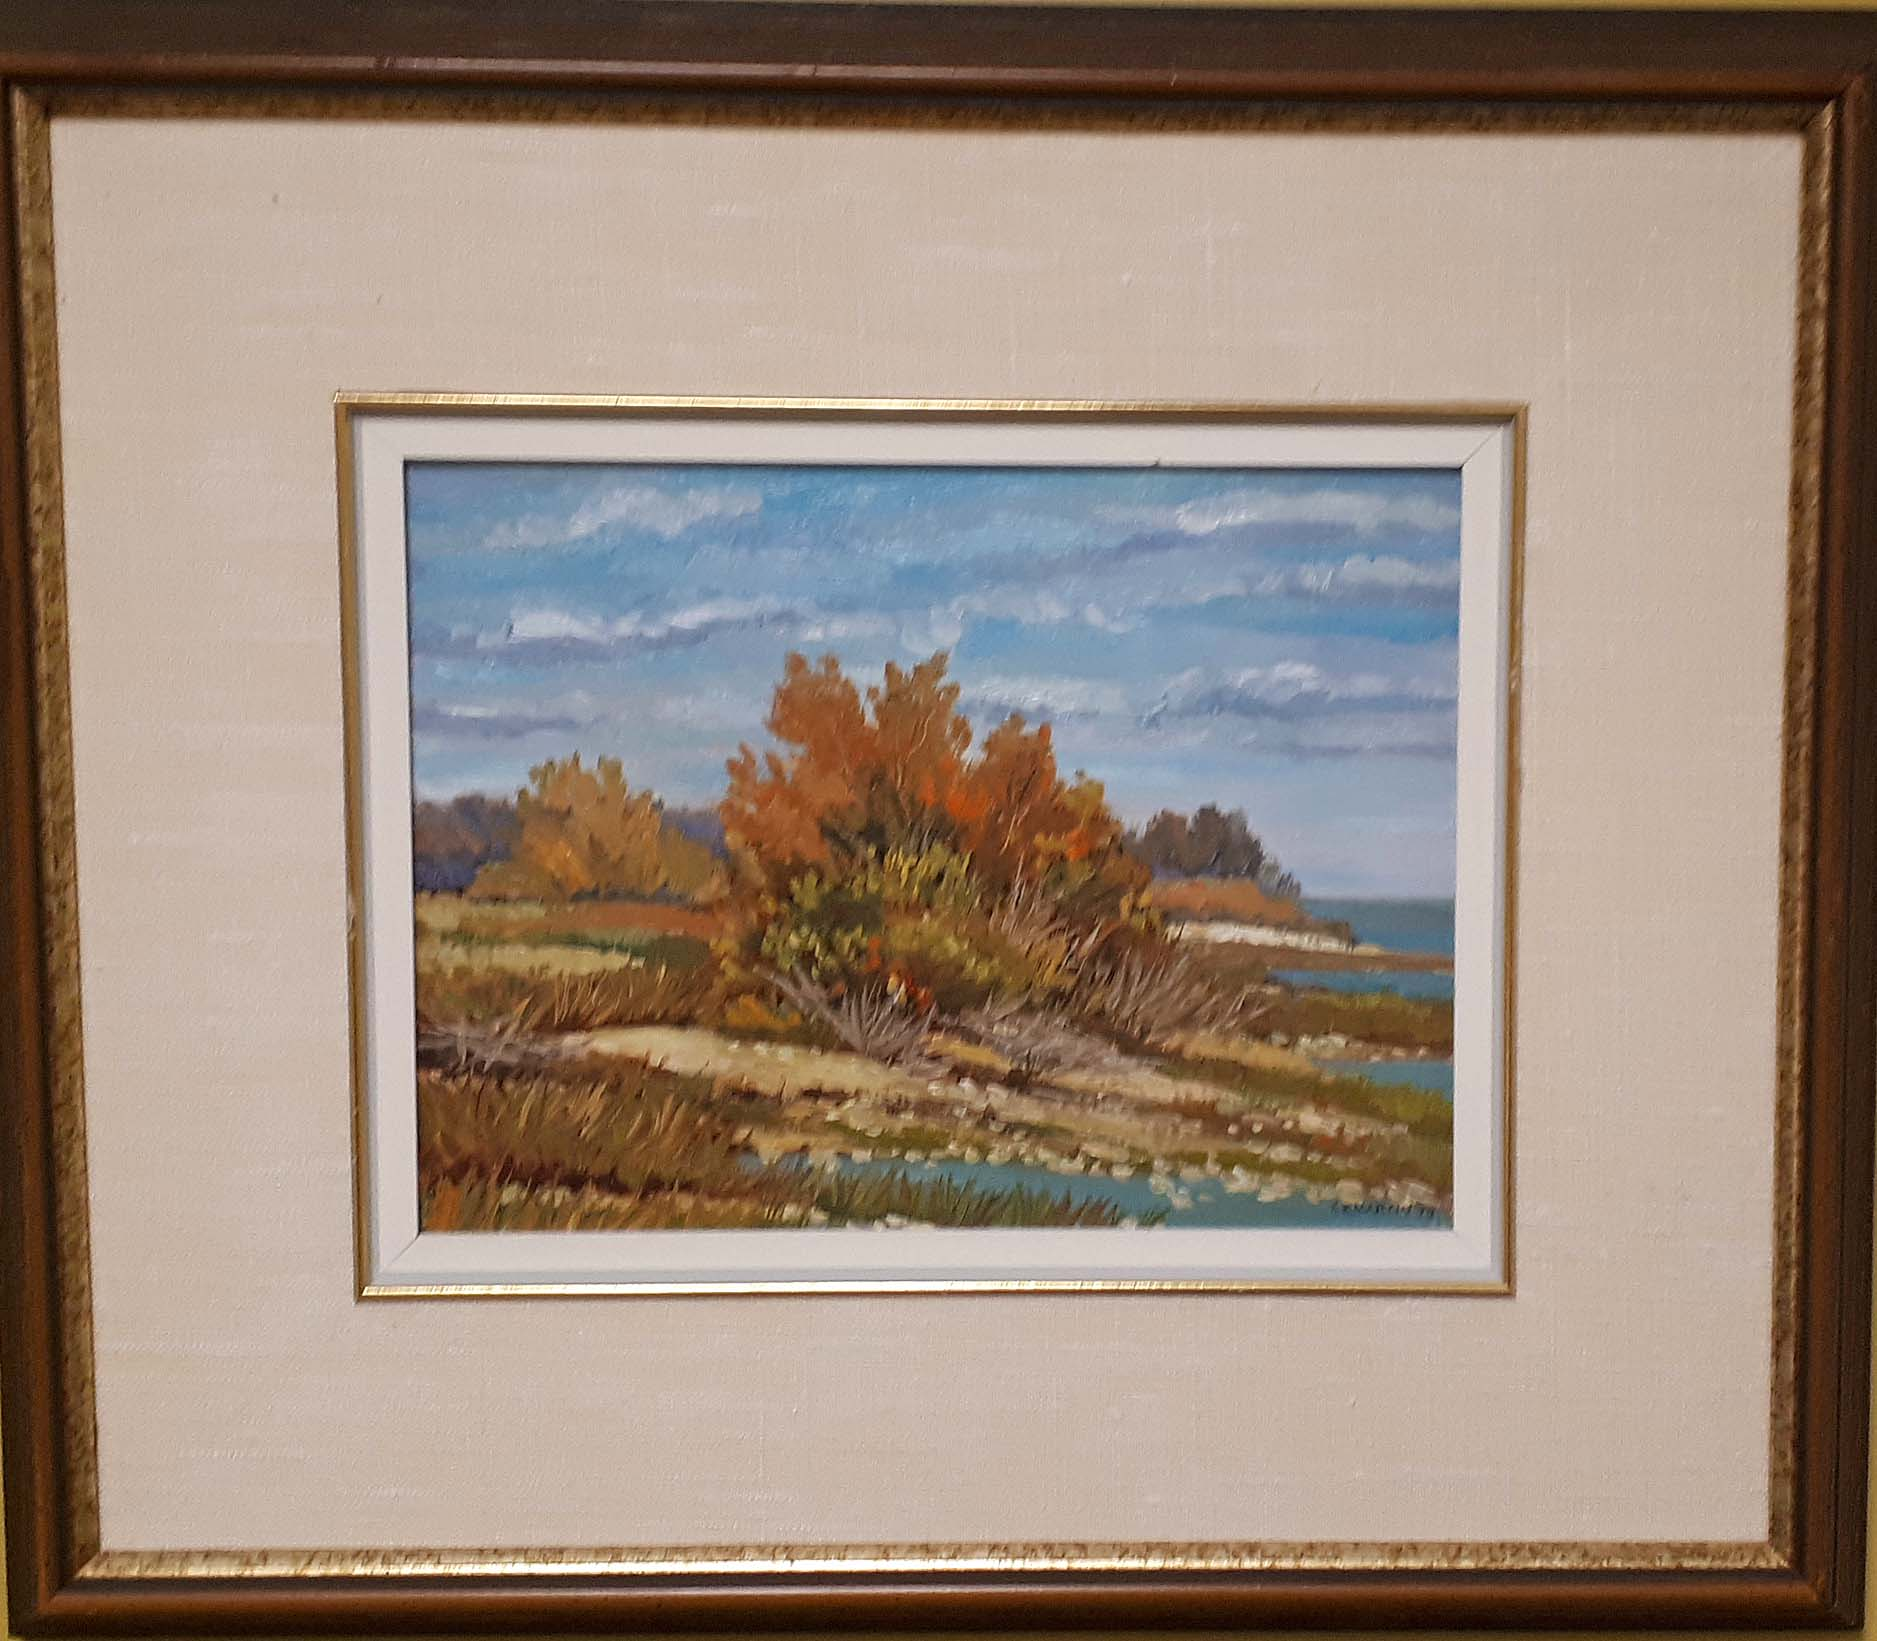 "Ken Martin MSA, ""September Day"" Ponemah Beach, 1977, Size: 19 x 21, Price: 265.00 0r 475.00 pair"